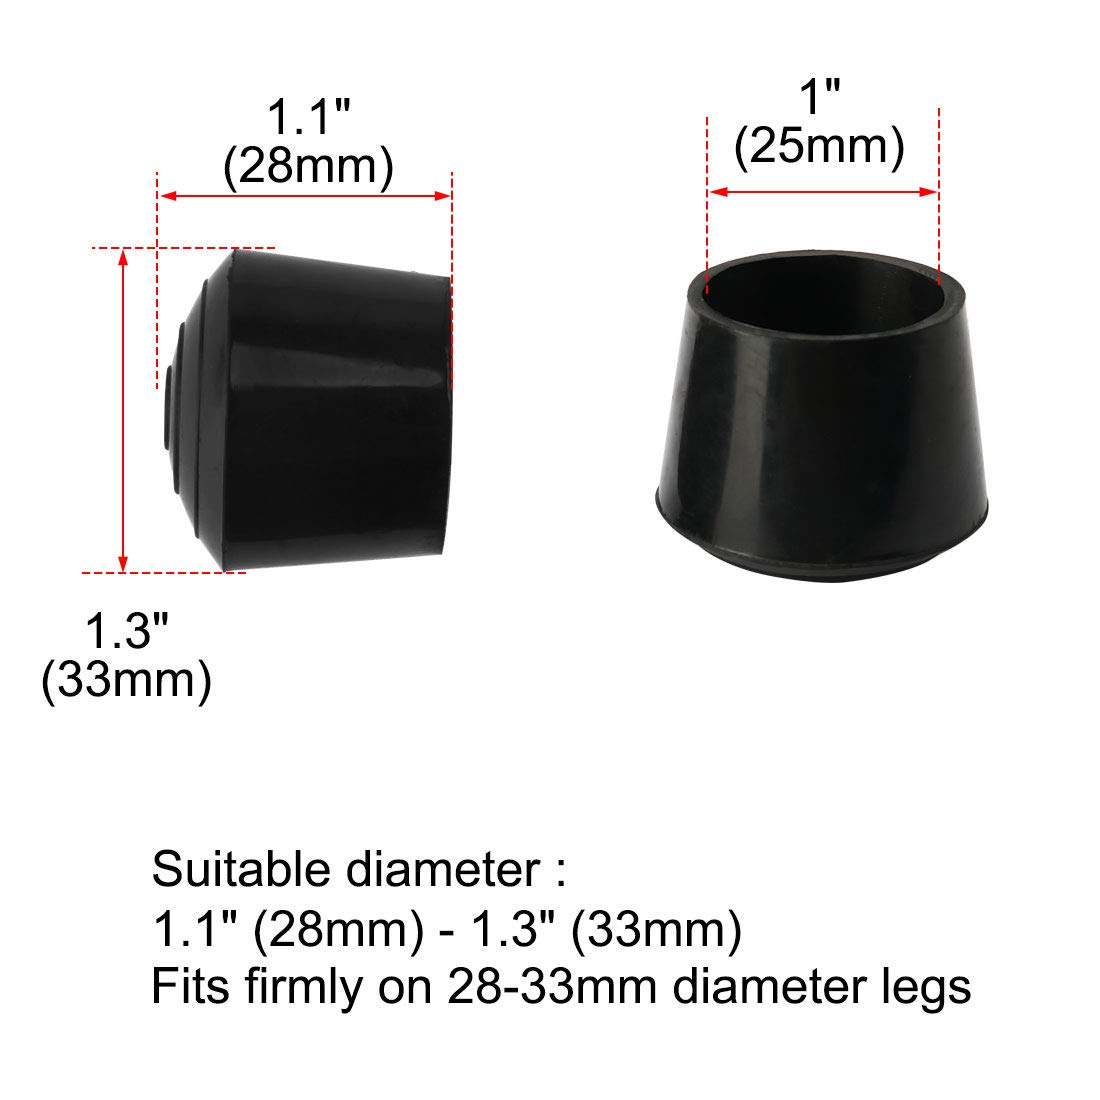 uxcell 5pcs Chair Leg Tips Caps 32mm 1 1//4 Inch Anti Slip Rubber Furniture Table Feet Cover Floor Protector Reduce Noise Prevent Scratches